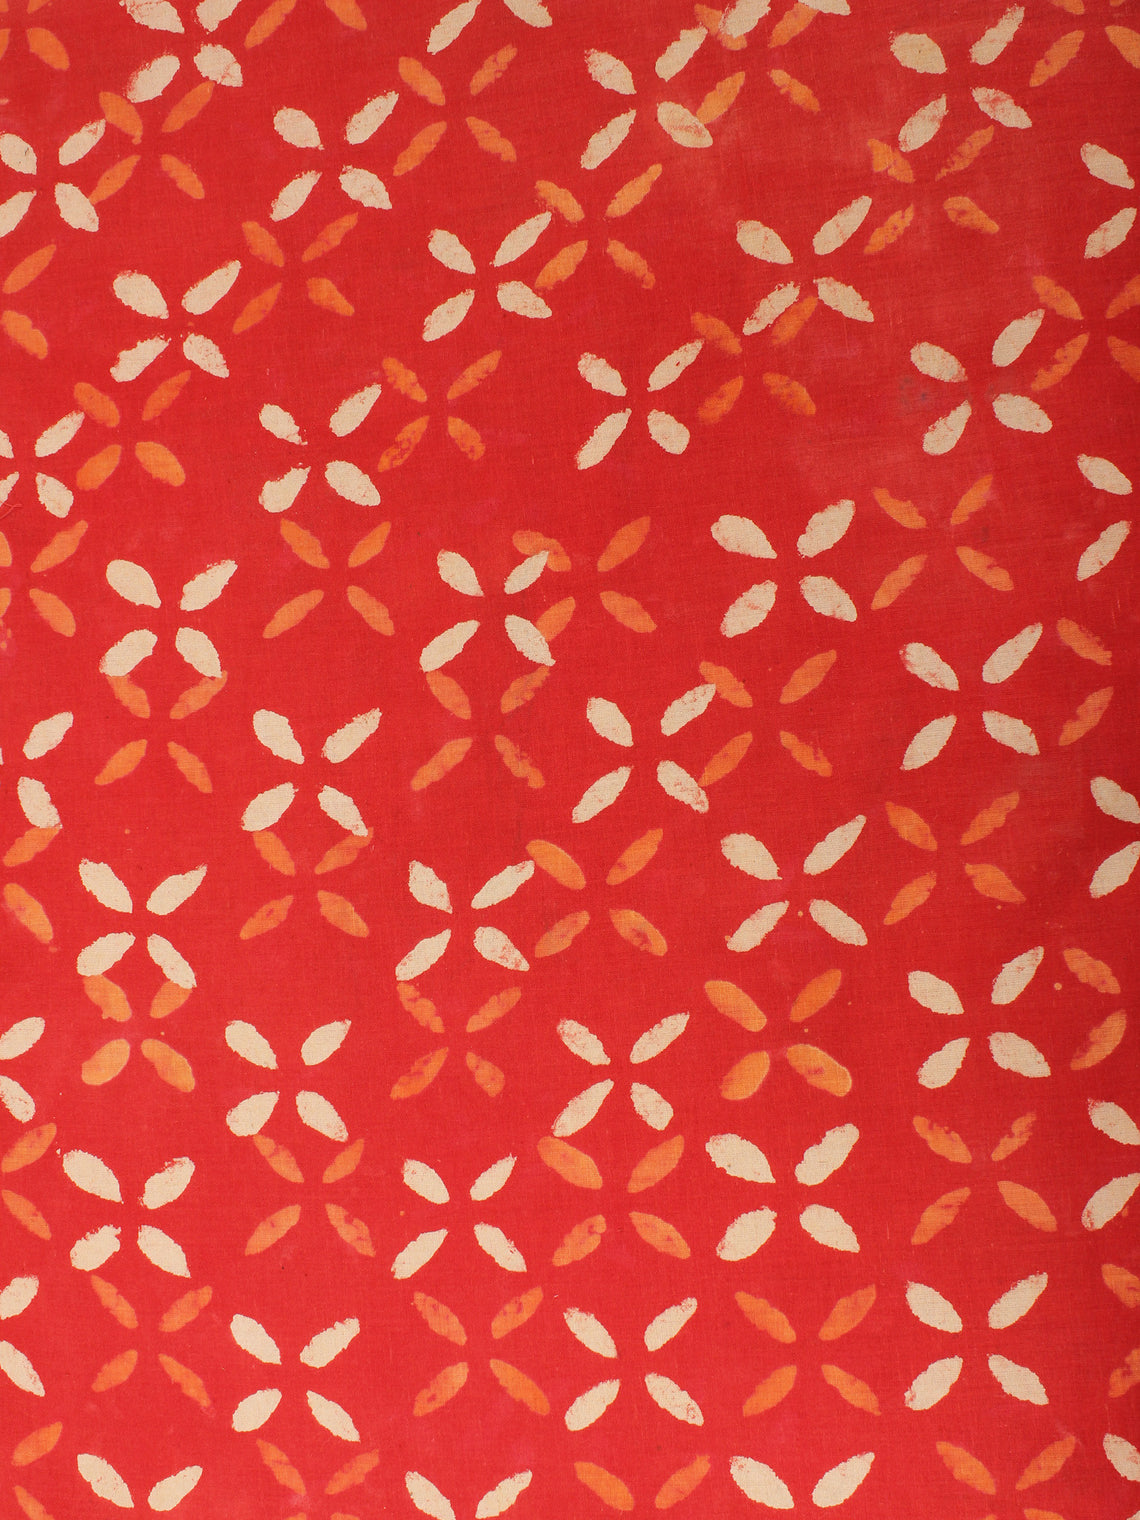 Orange Beige Natural Dyed Hand Block Printed Cotton Fabric Per Meter - F0916234